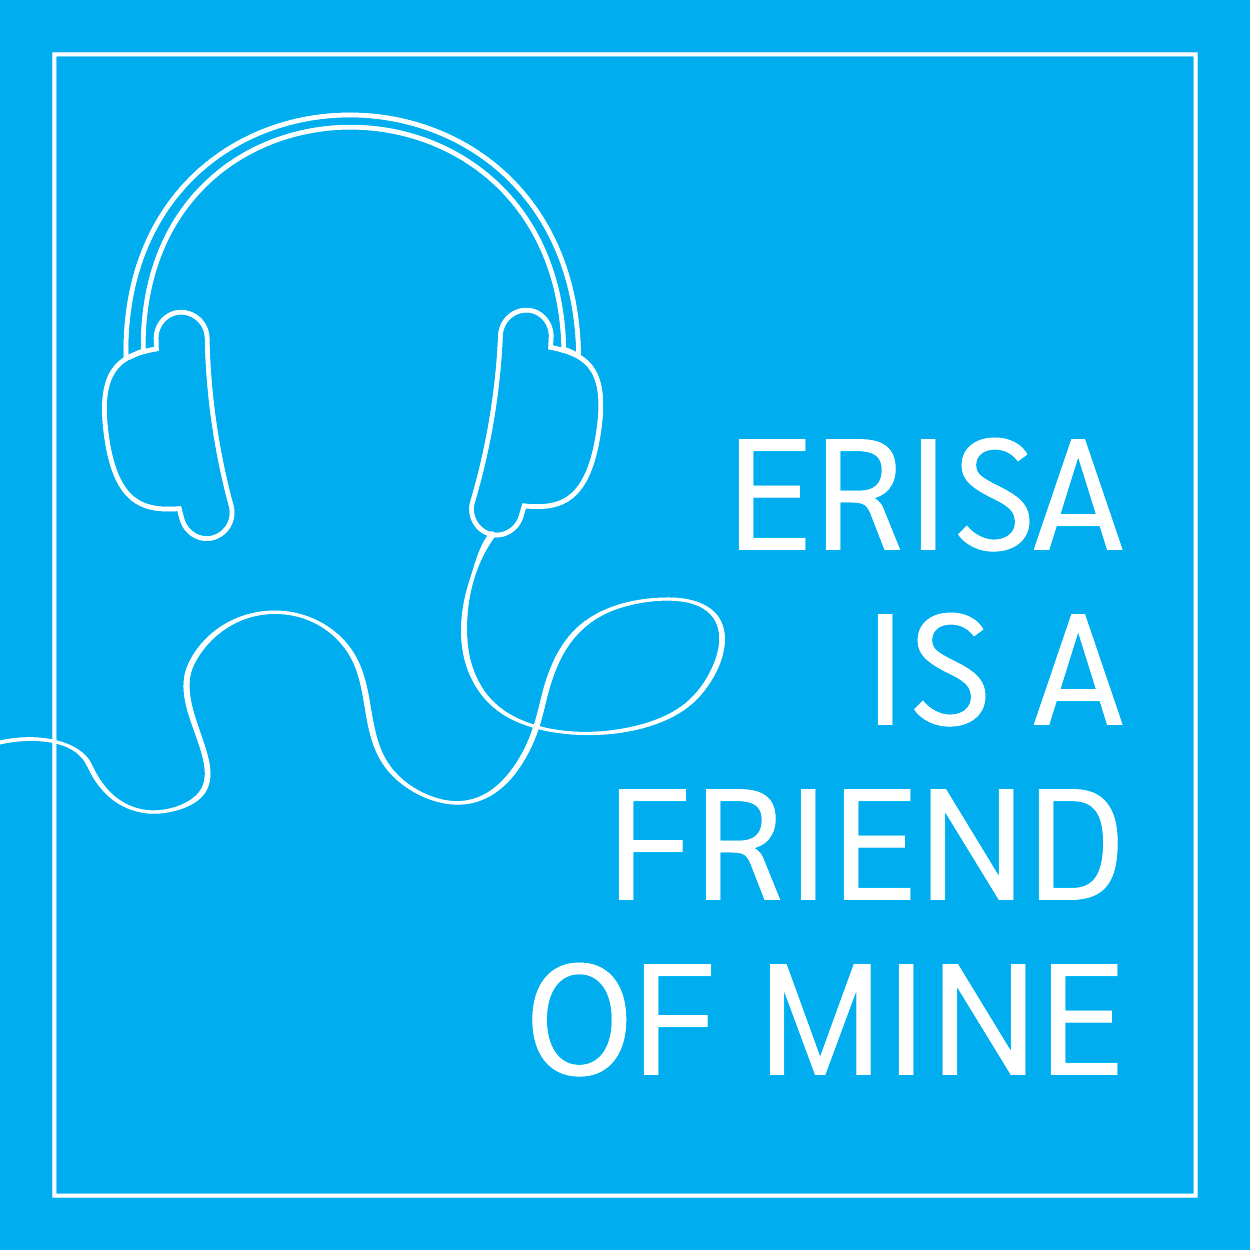 ERISA is a friend of mine show art